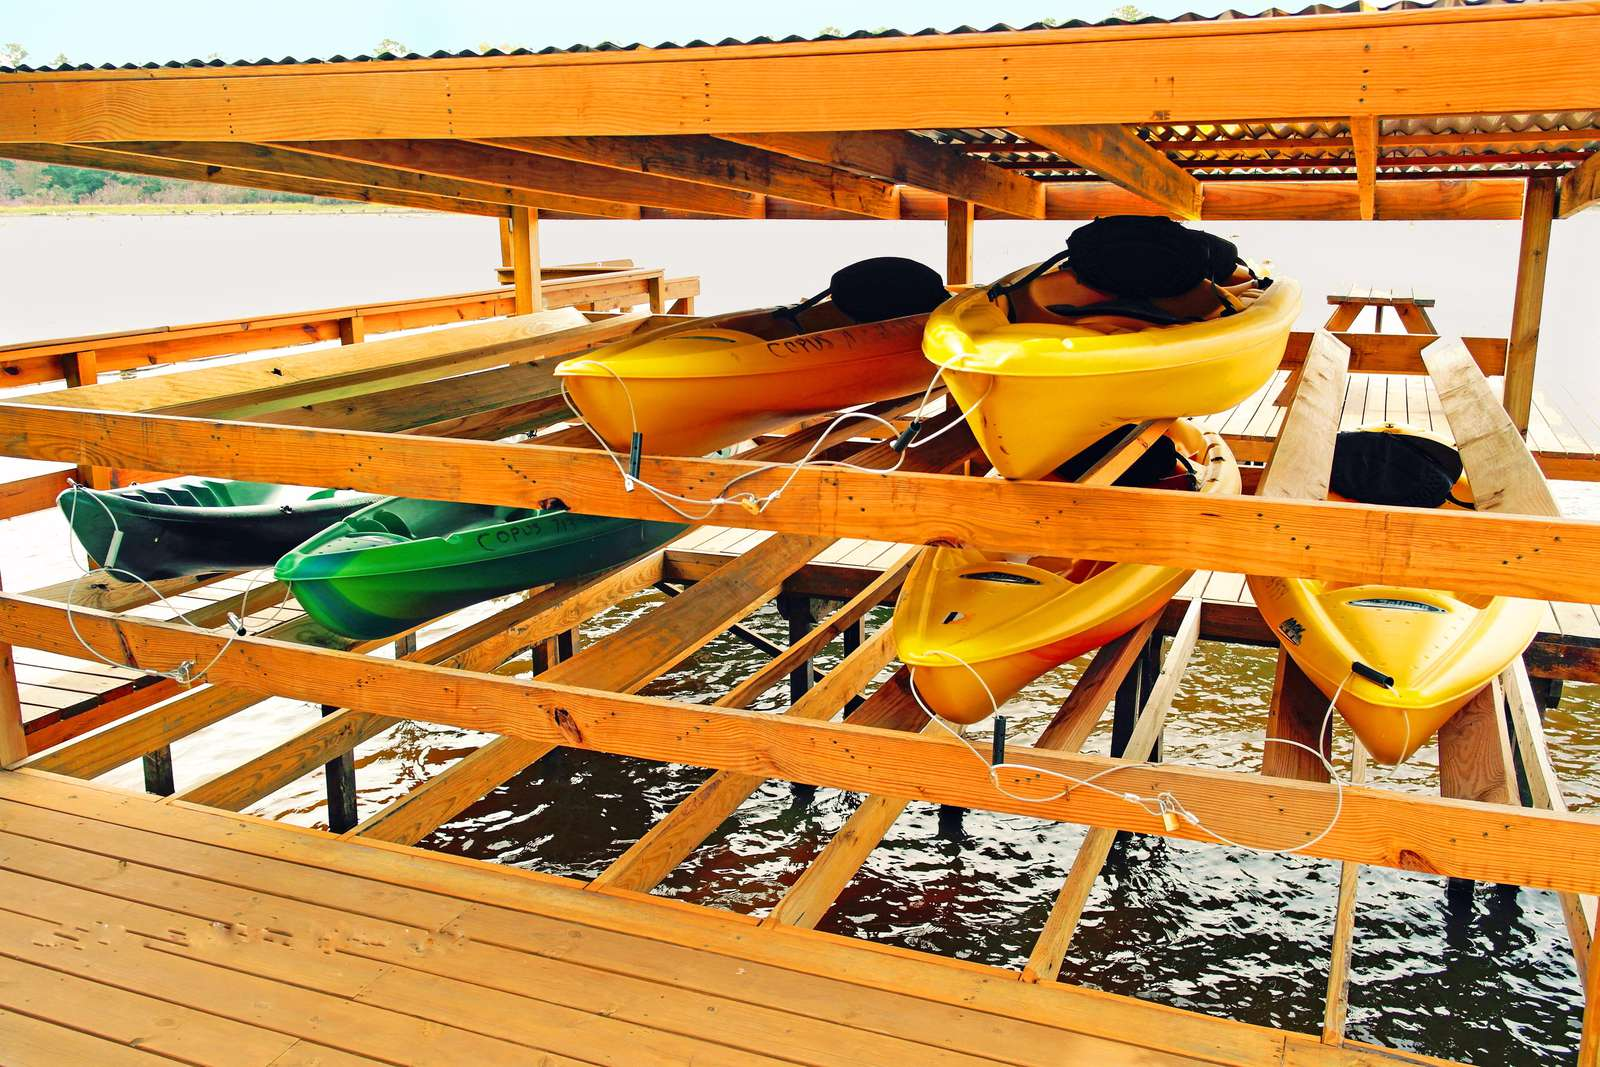 The kayaks are for your use, no need to share with others.. Put a life jacket on, hop on a kayak and explore!